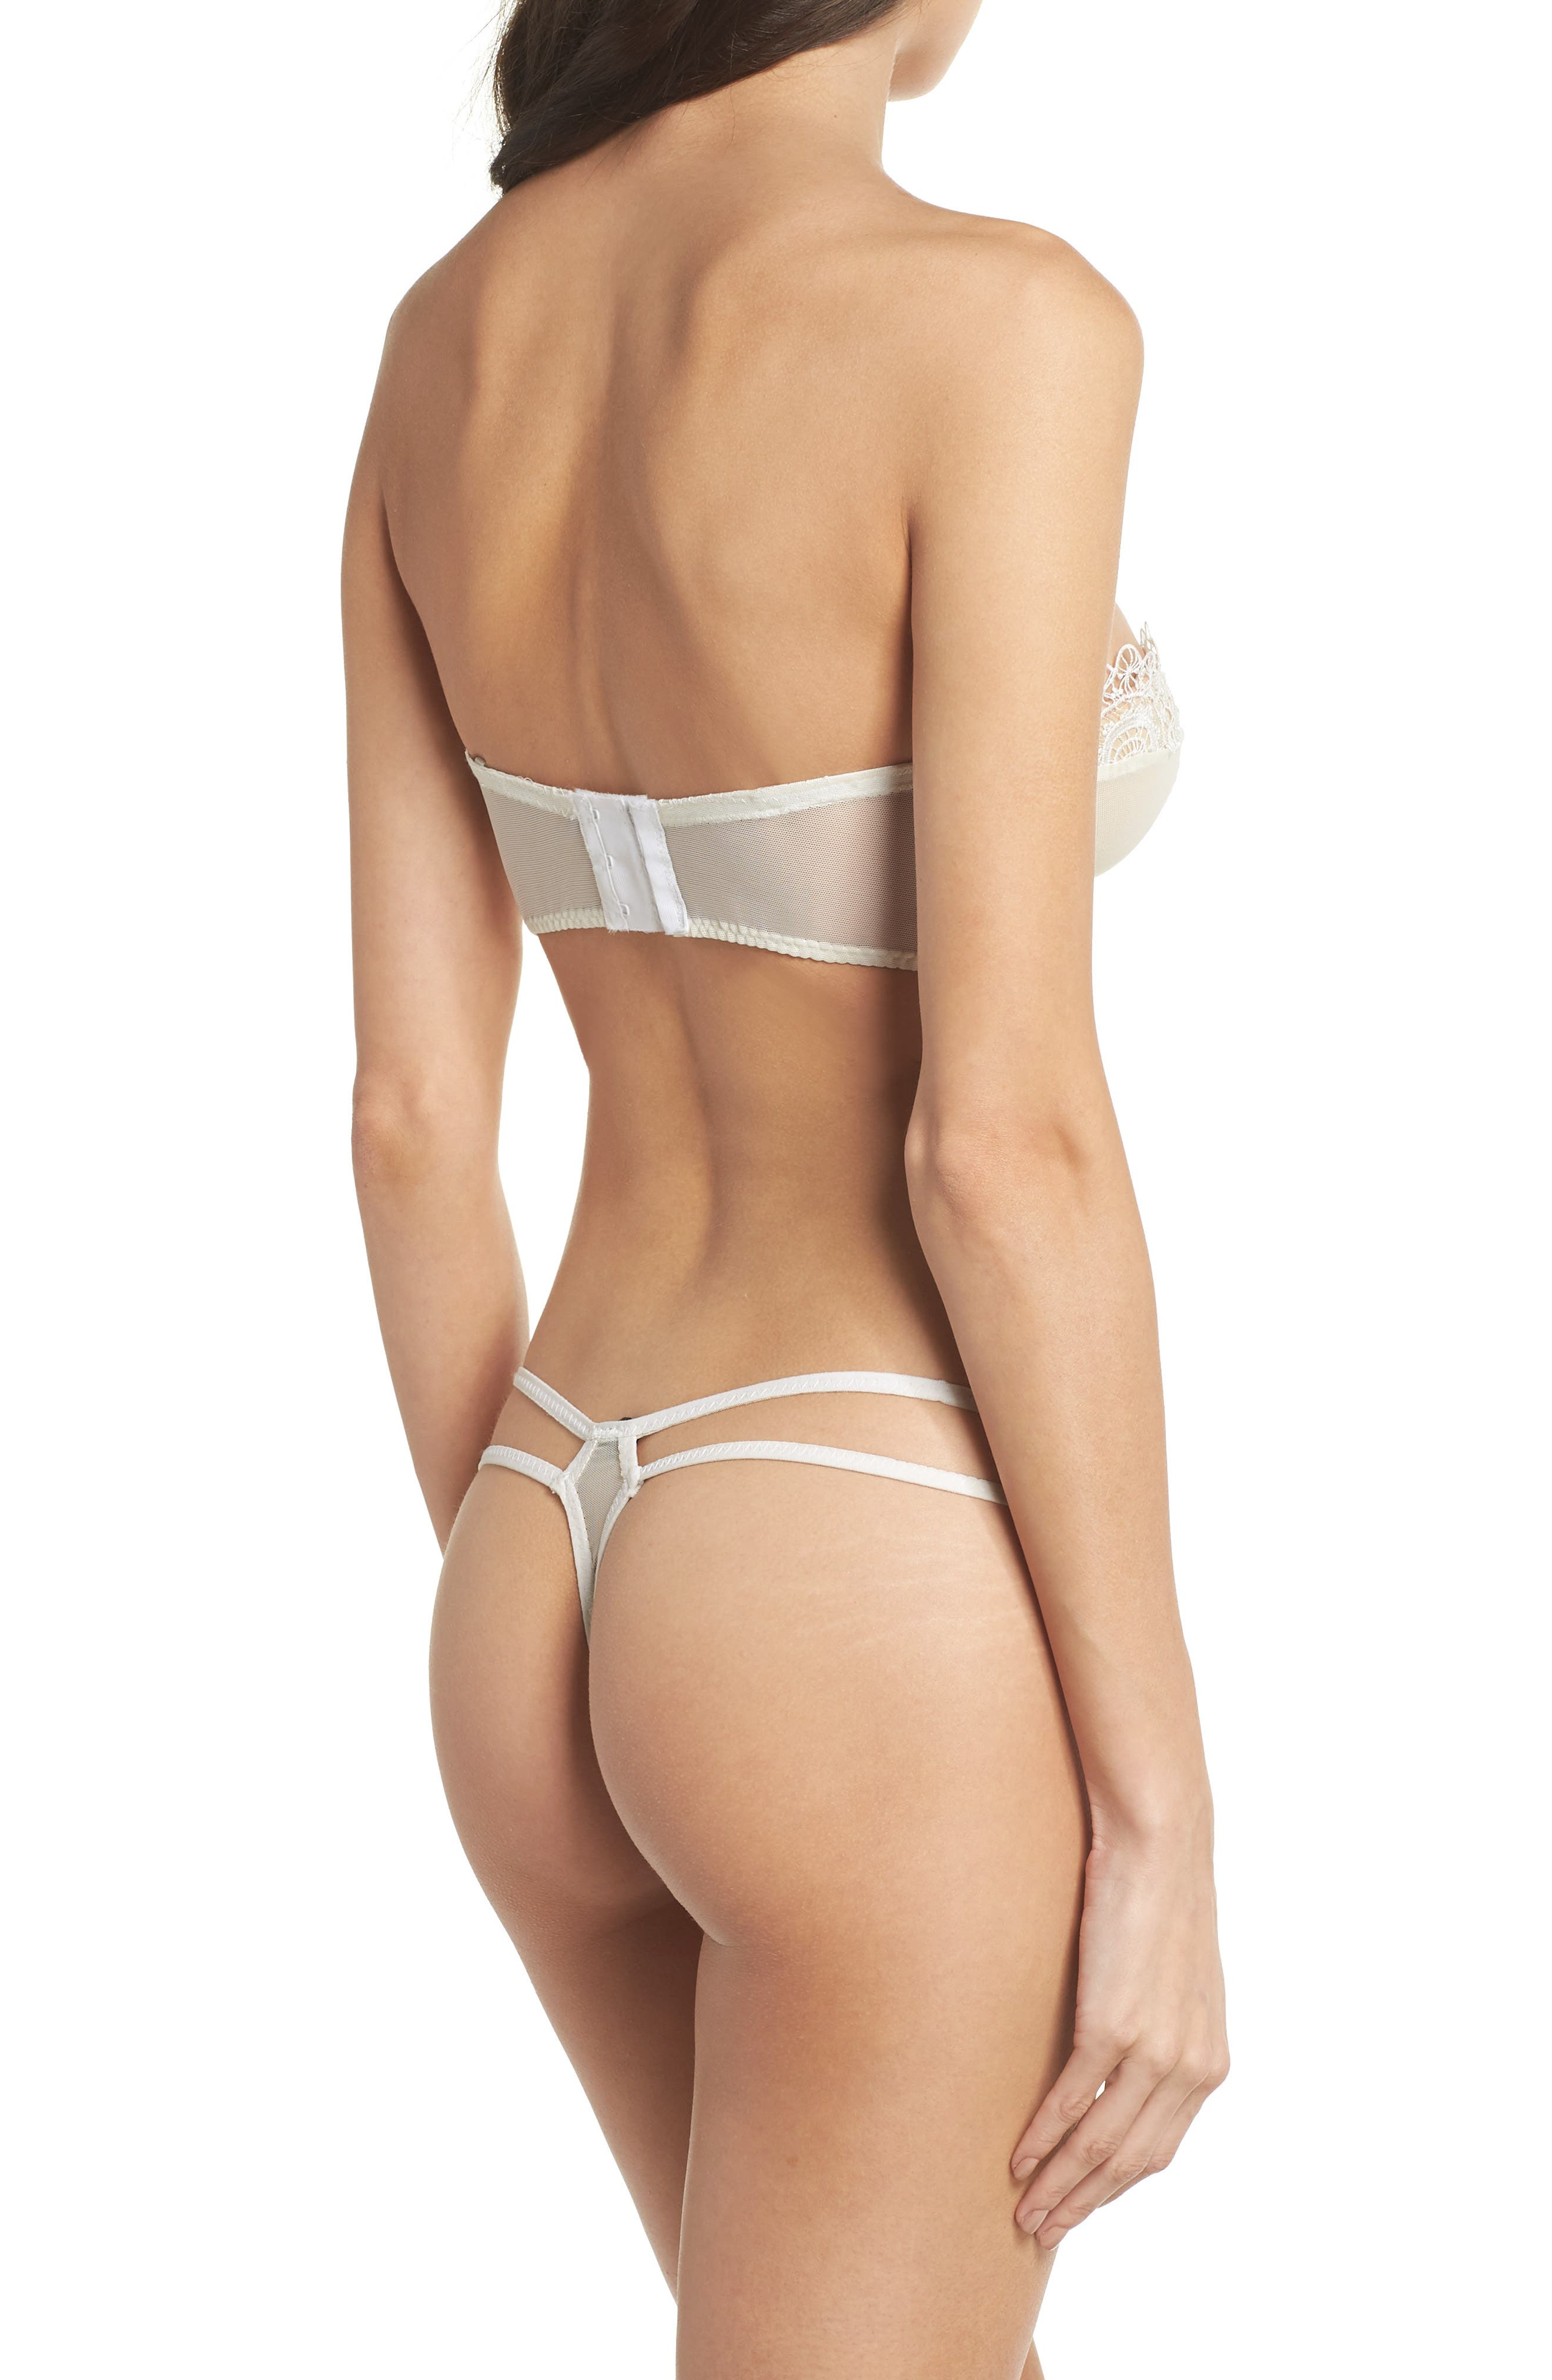 Thistle & Spire Willow Underwire Convertible Bustier Bra,                             Alternate thumbnail 6, color,                             Ivory